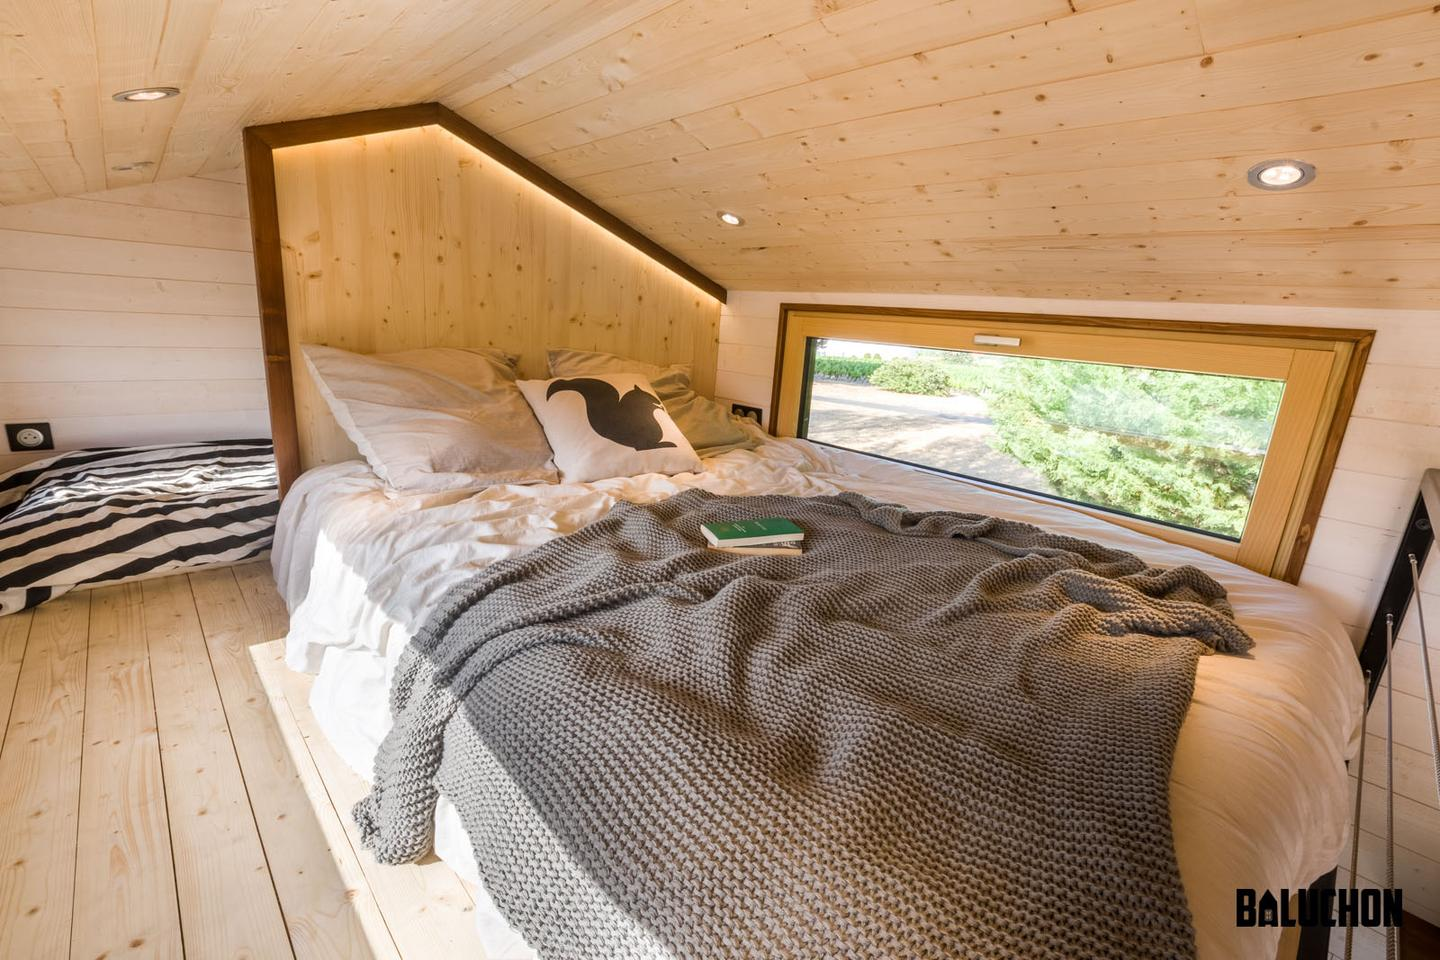 The Hauméa tiny house's two bedrooms are squeezed into one loft space